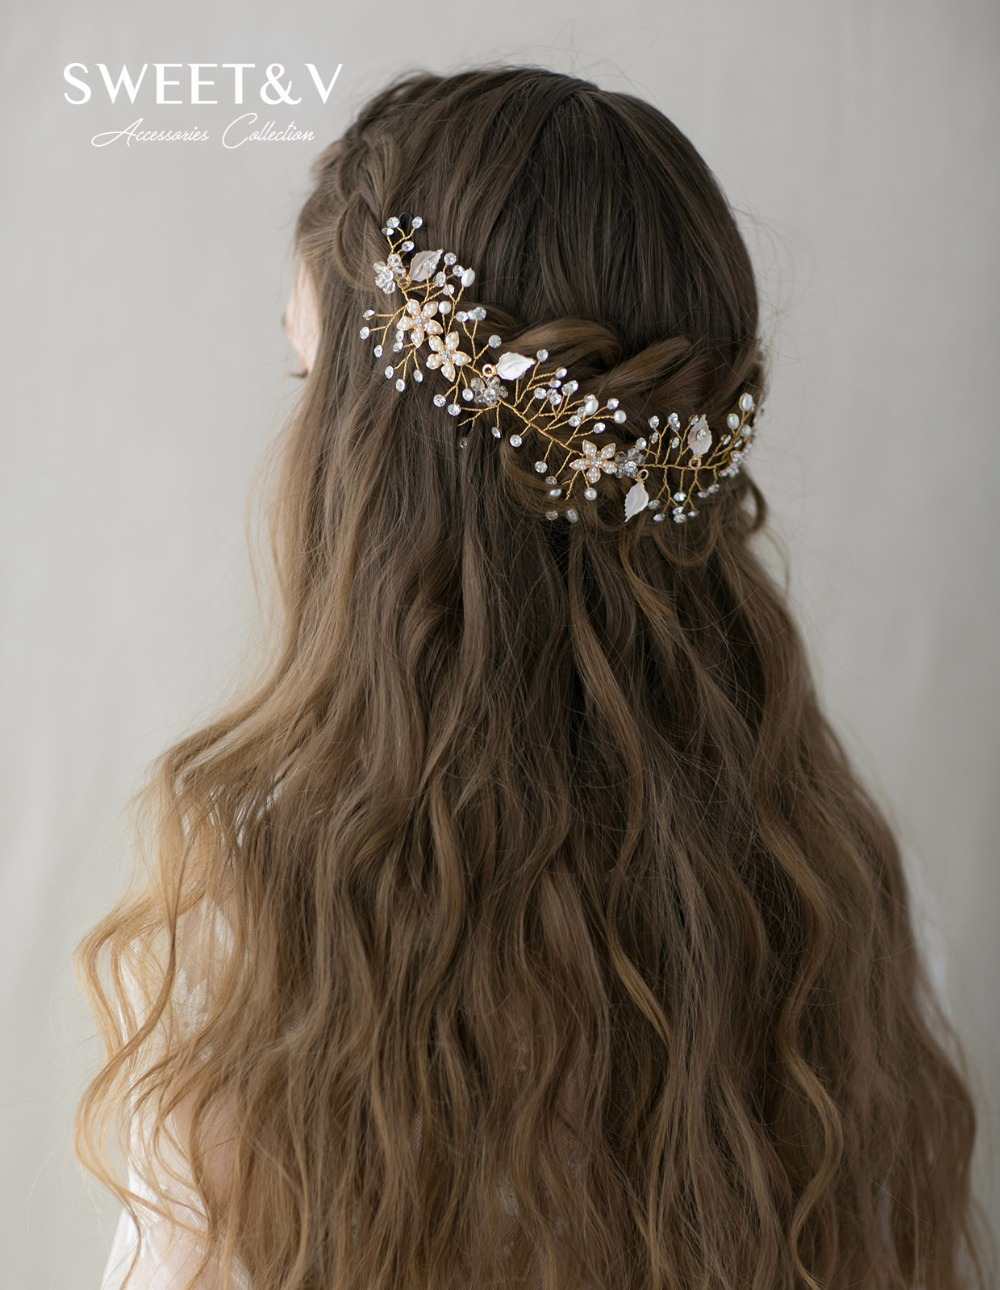 Wedding hair accessories christchurch - Bohemian Rhinestone Pearl Wedding Headband Handmade Flower Hair Vine Band Bridal Hair Accessories Women Tiara Headdress